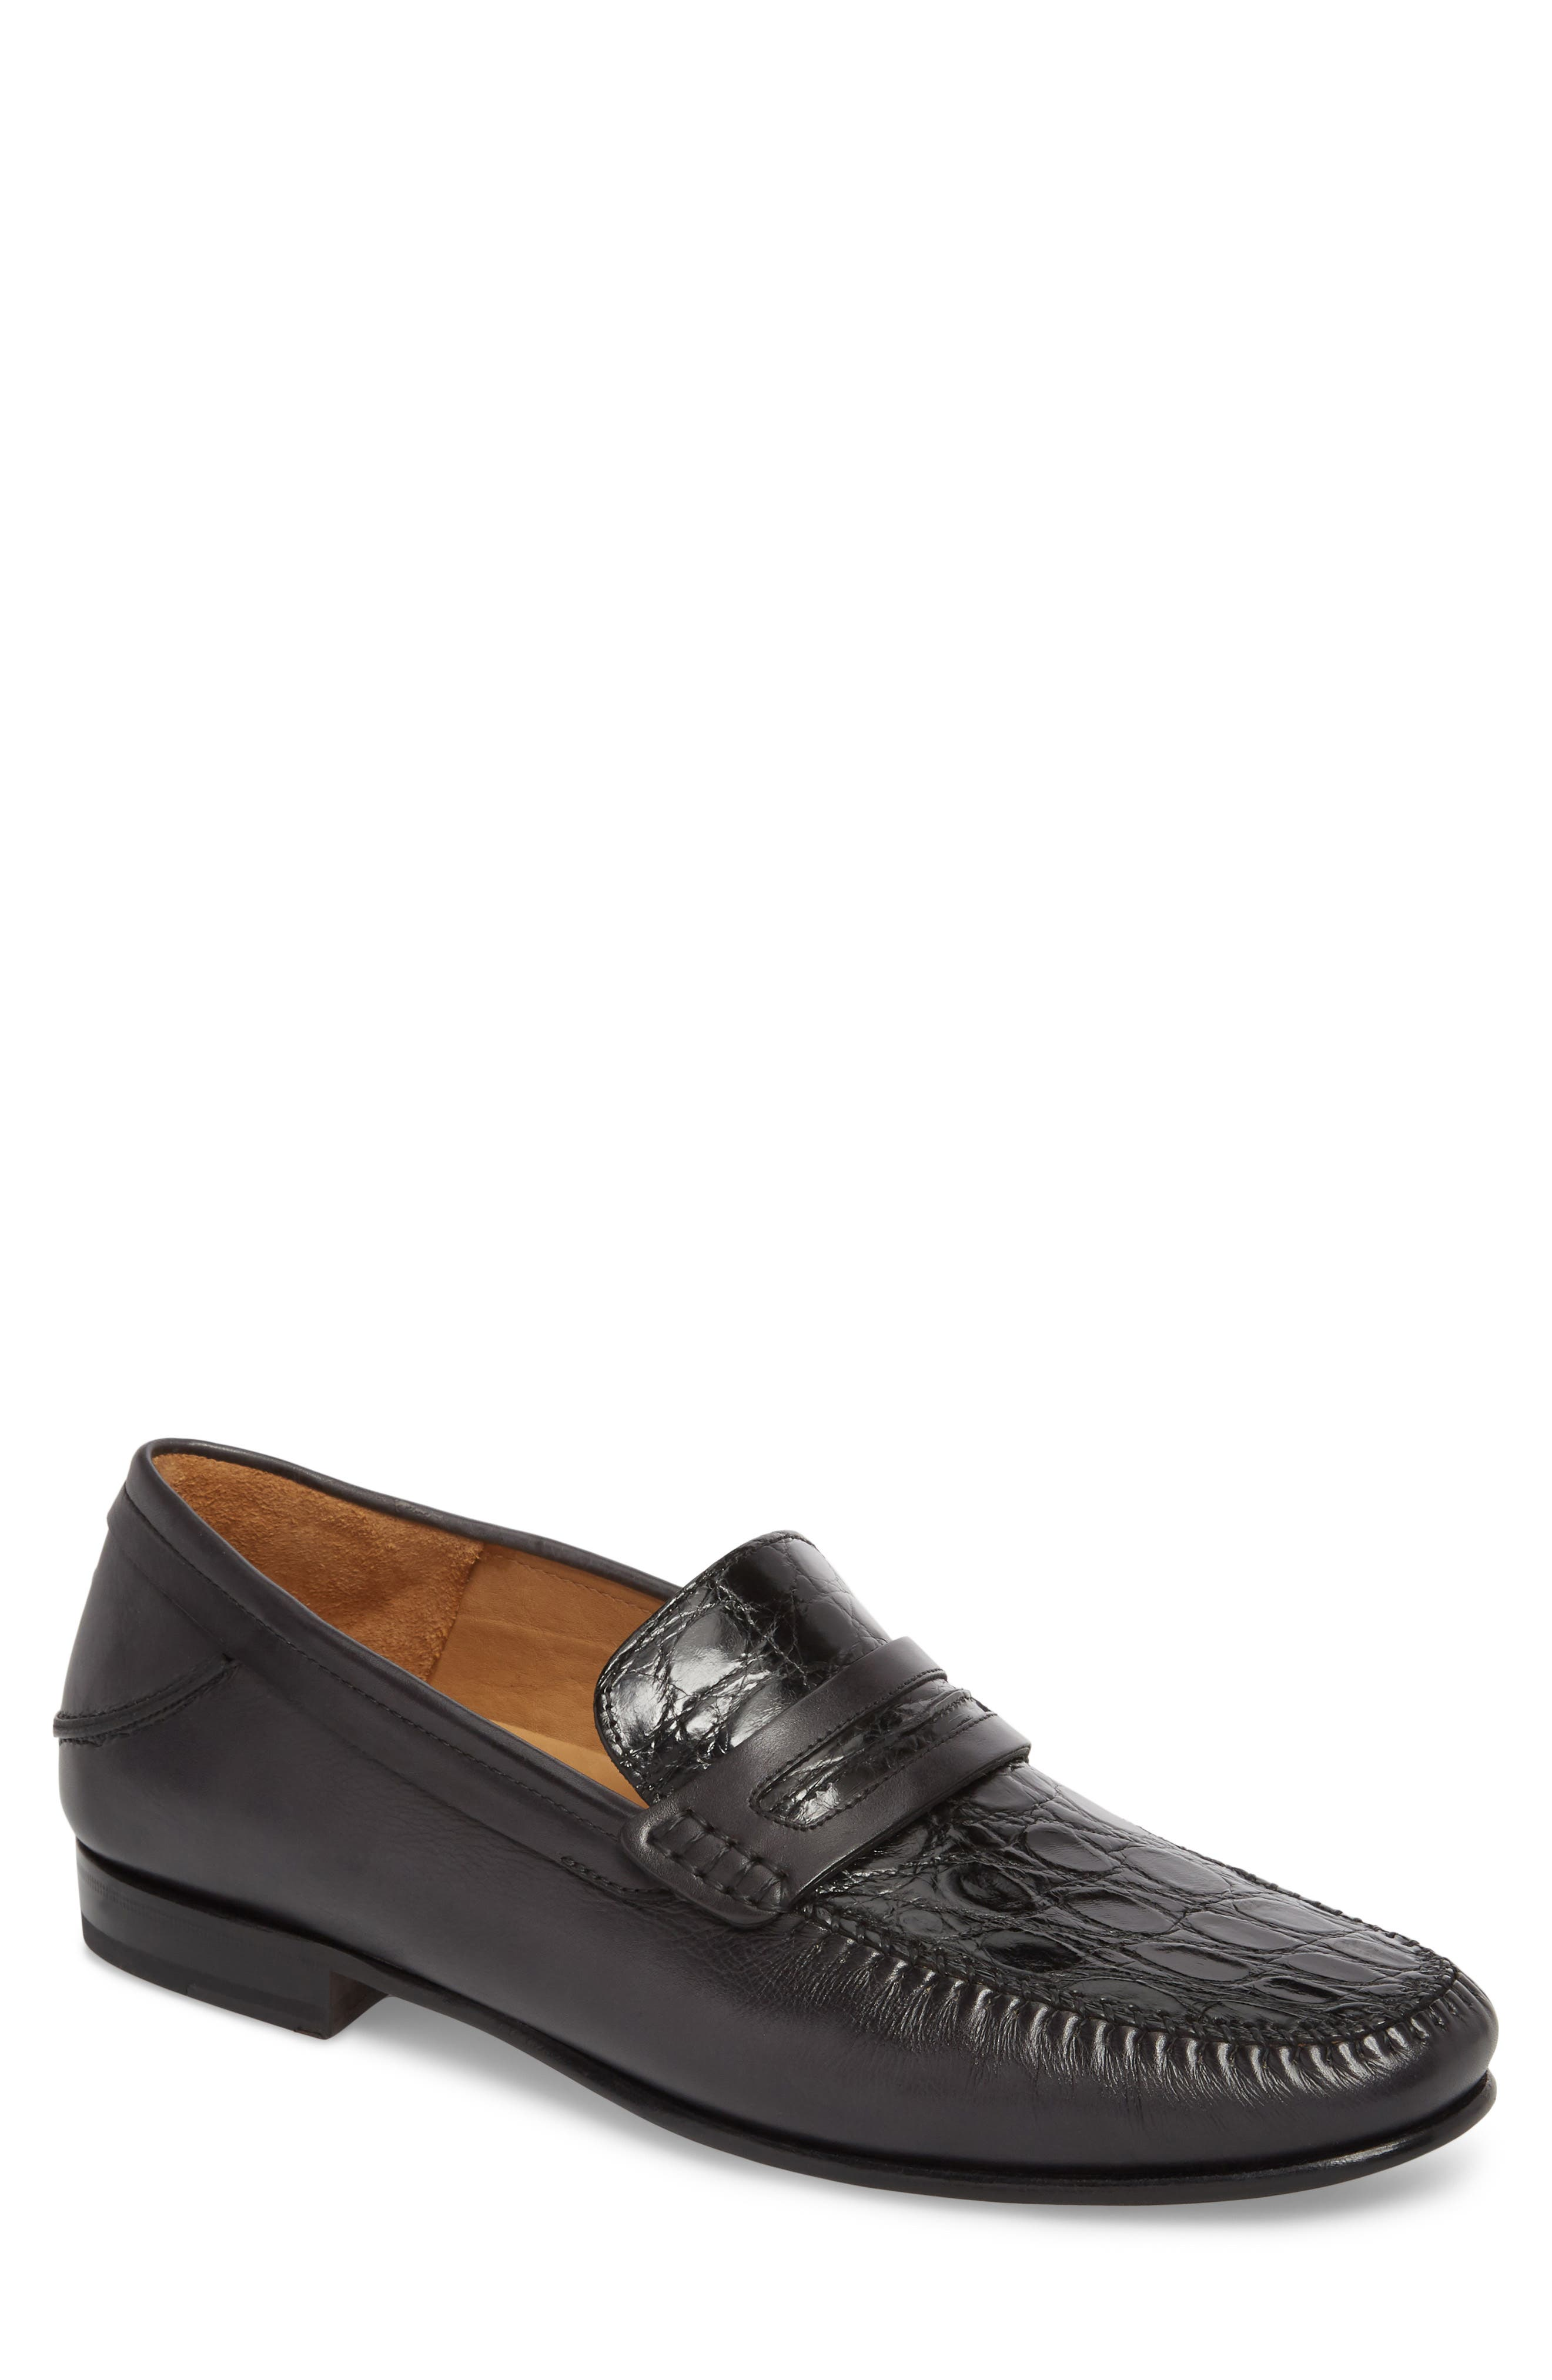 Kronos Moc Toe Penny Loafer,                             Main thumbnail 1, color,                             BLACK LEATHER